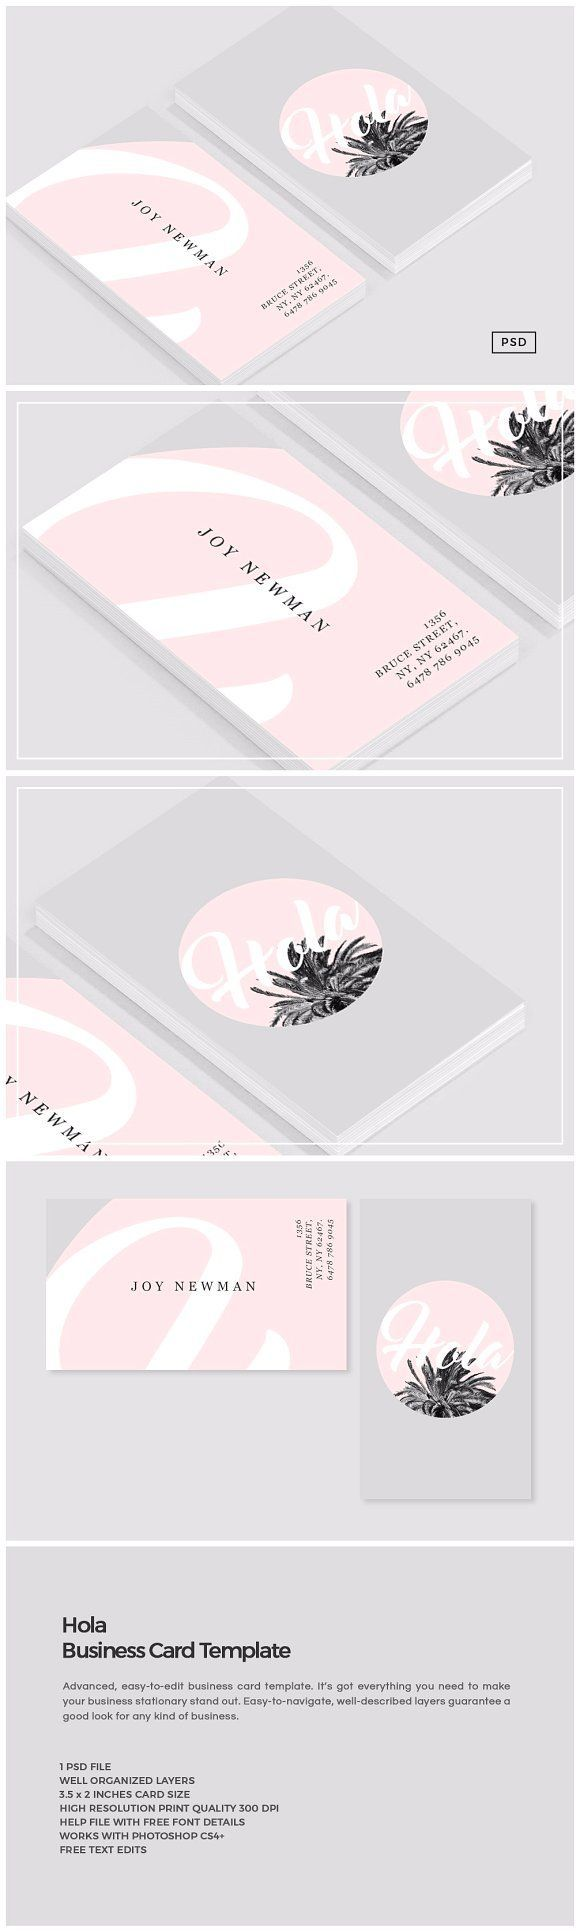 11803 best custom business cards images on pinterest logos hola business card template by the design label on creativemarket custombusinesscards magicingreecefo Images